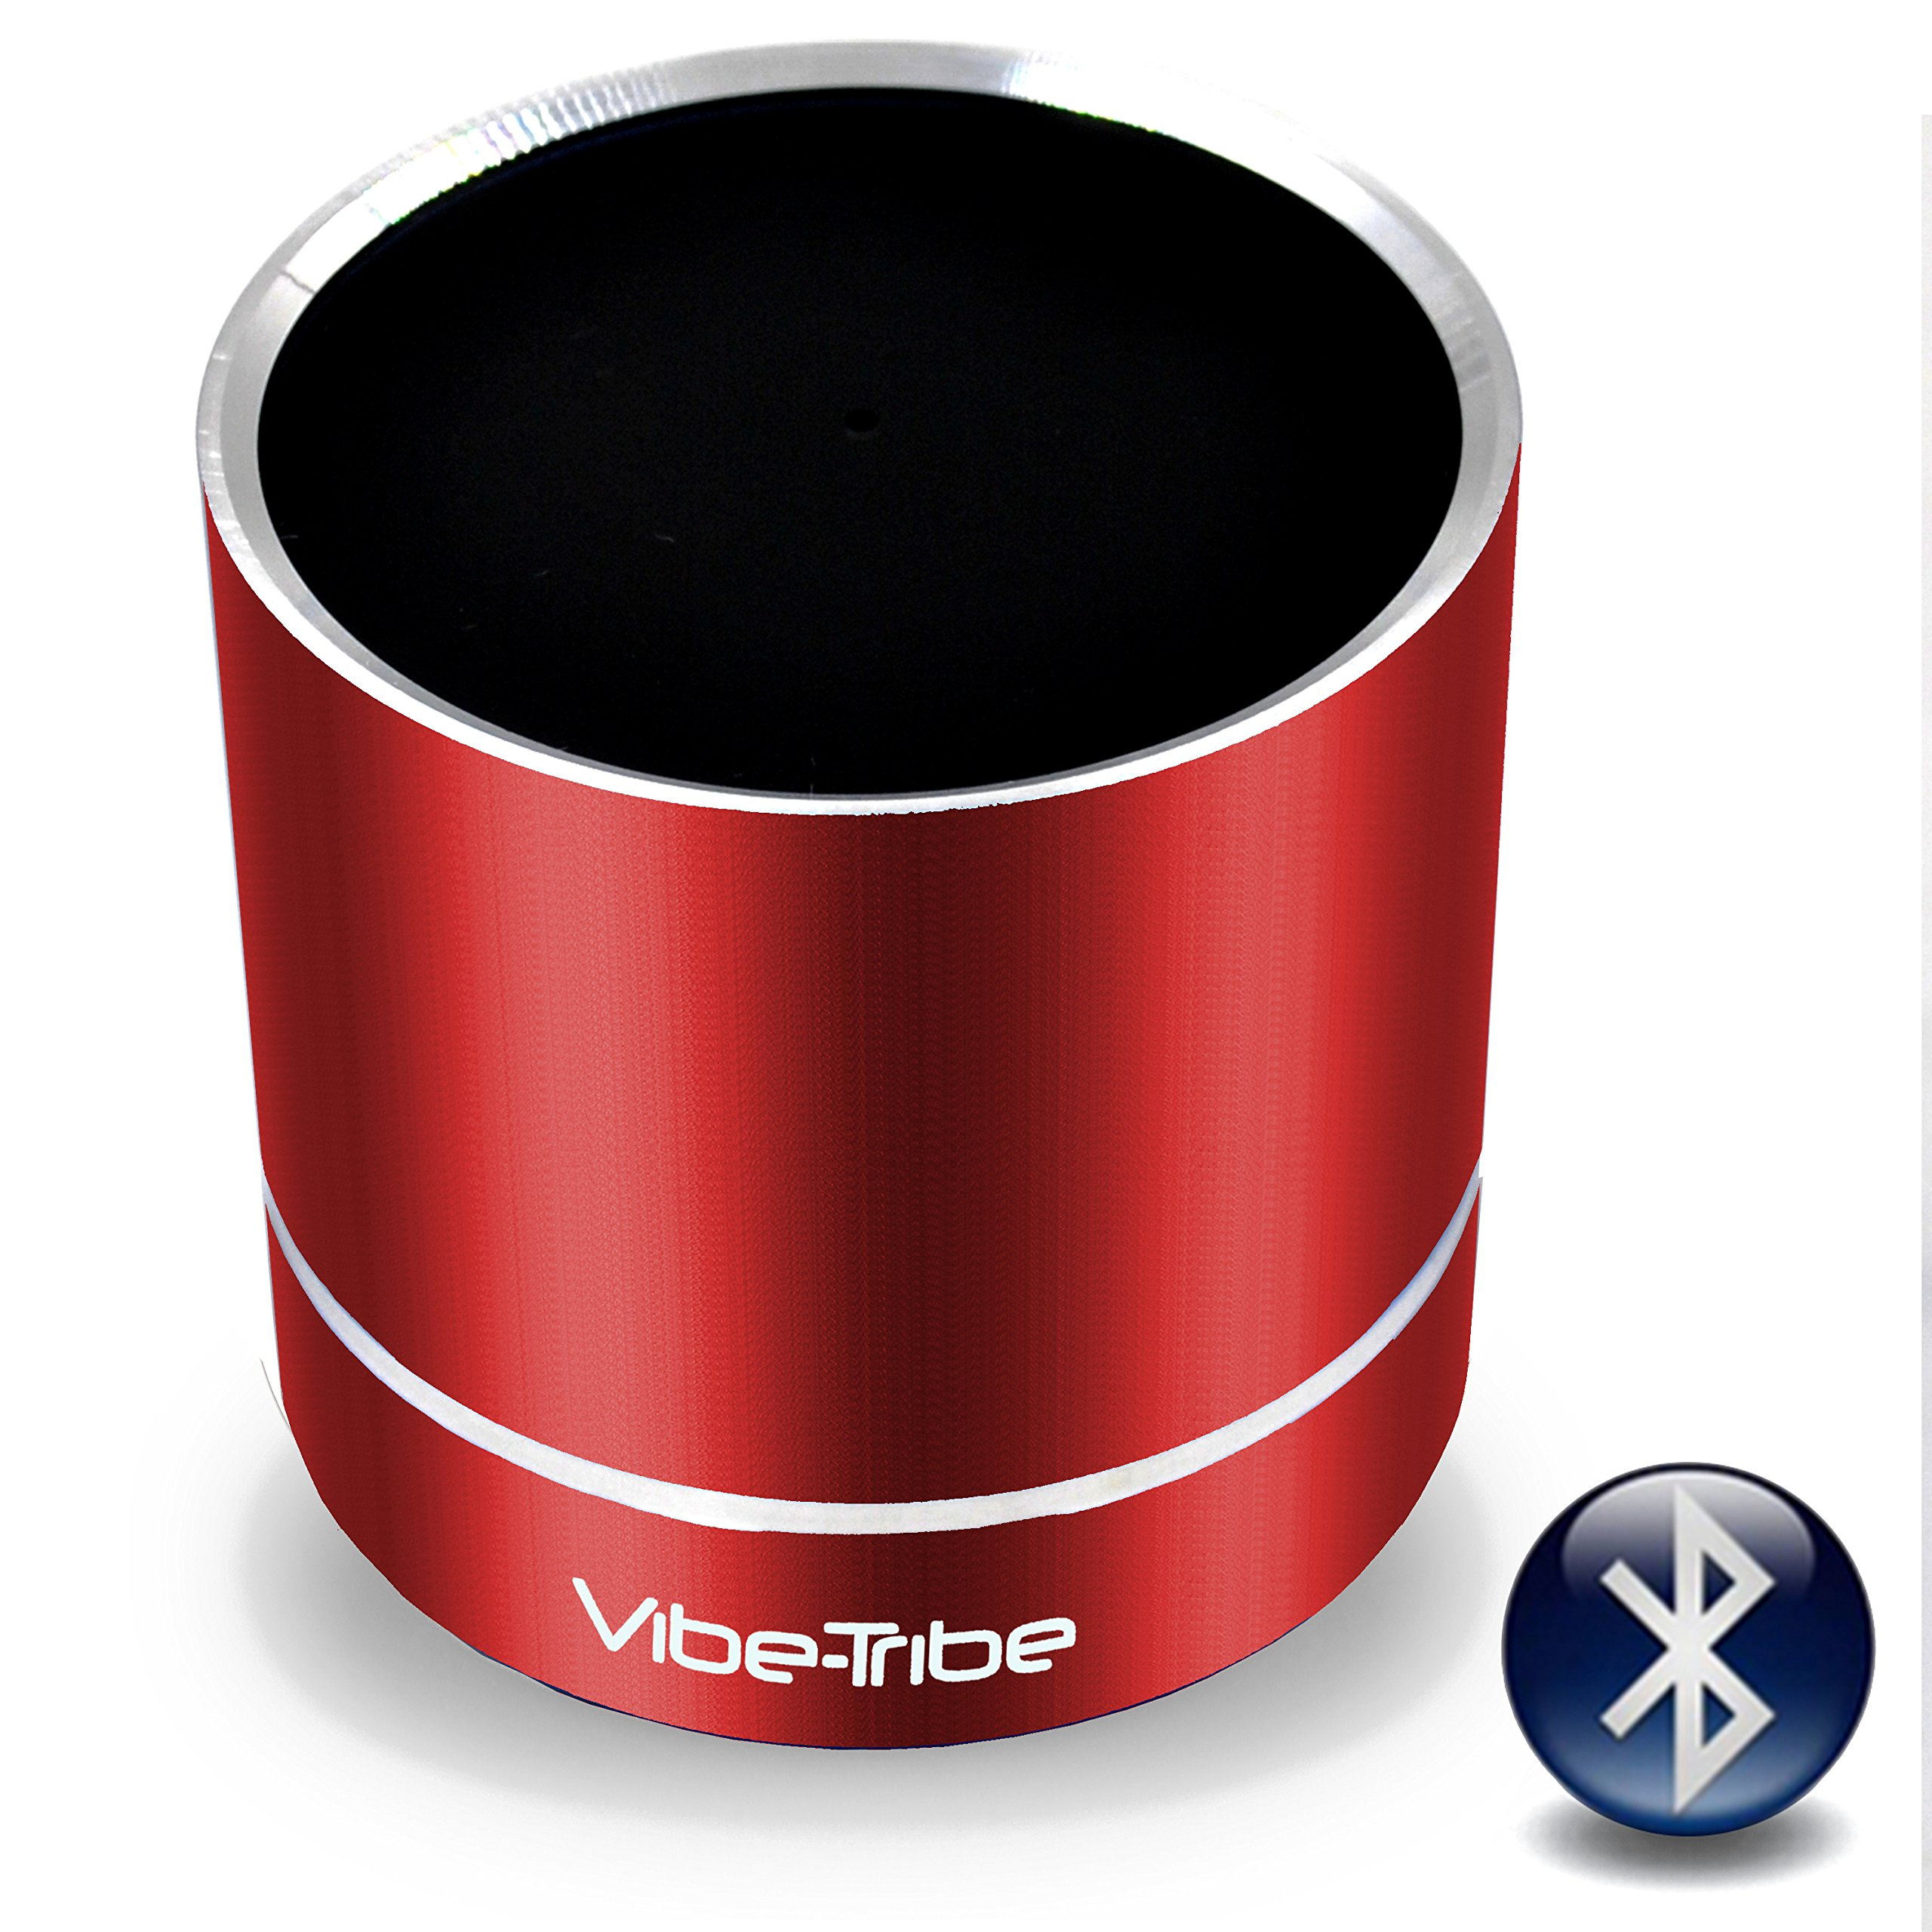 Vibe-Tribe Troll Plus Ruby Red: 12 Watt Bluetooth Vibration Speaker with Hands Free